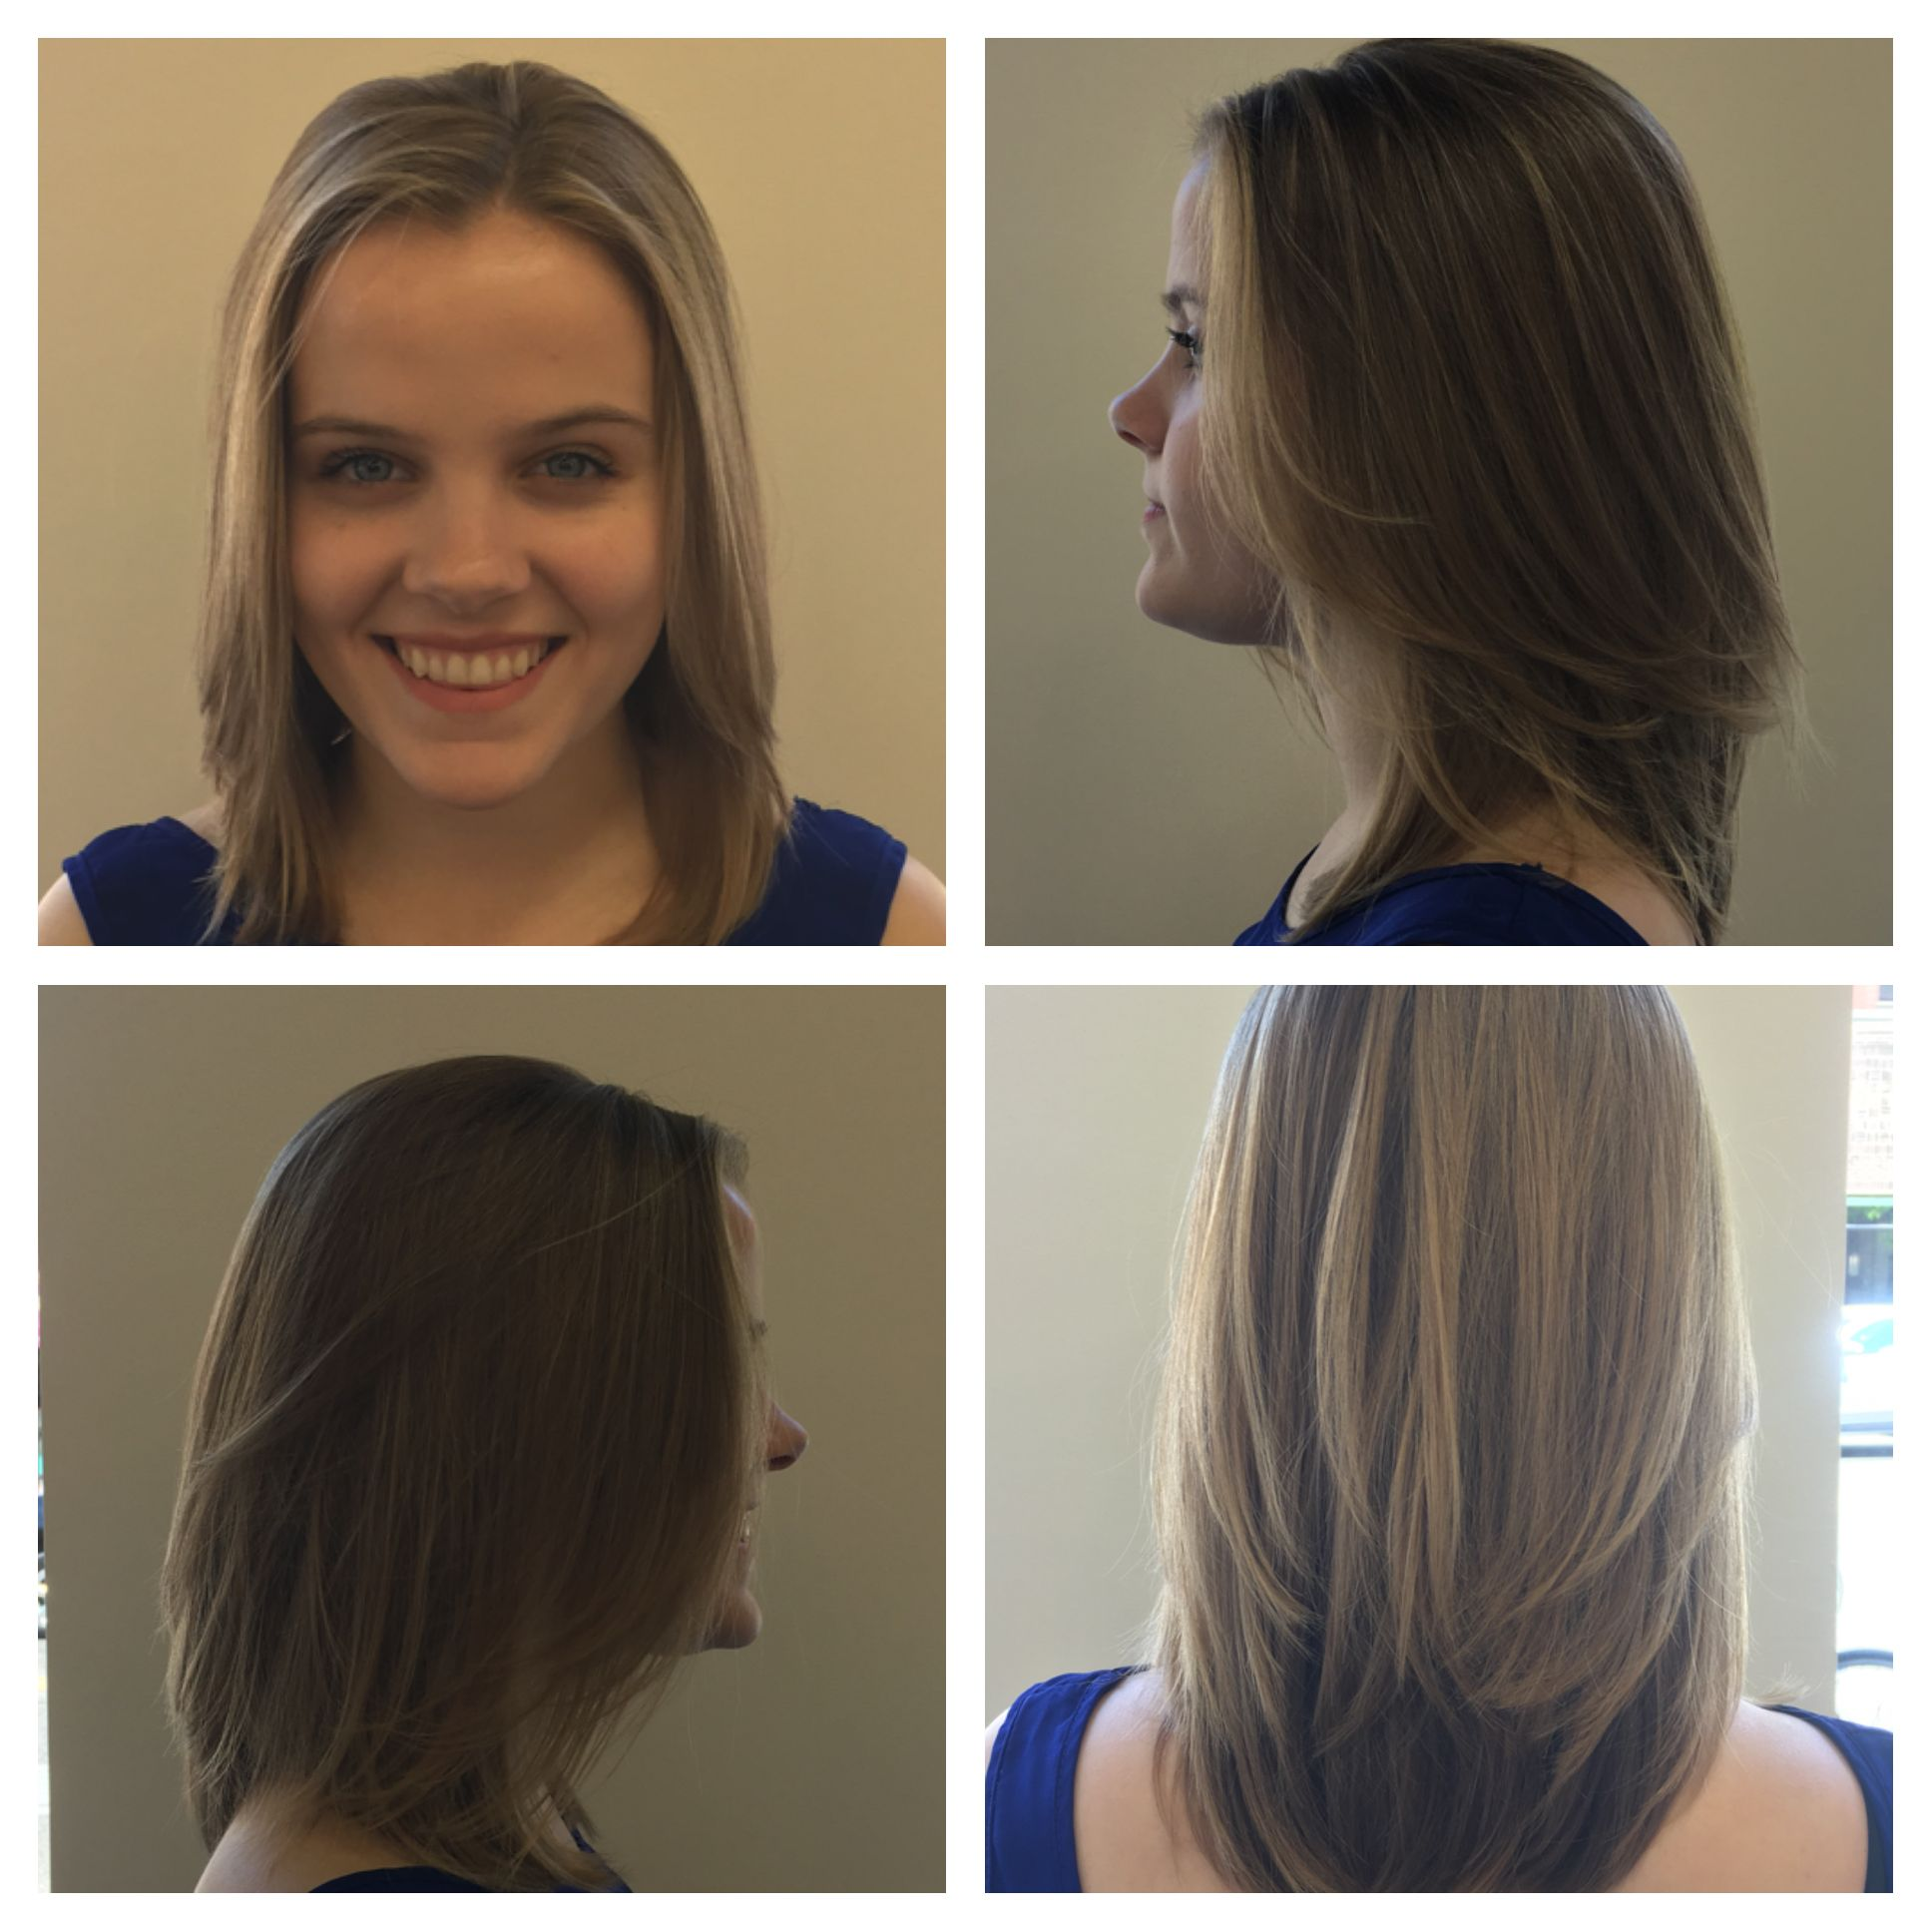 Half Round With Movement Final Model Blow Dry